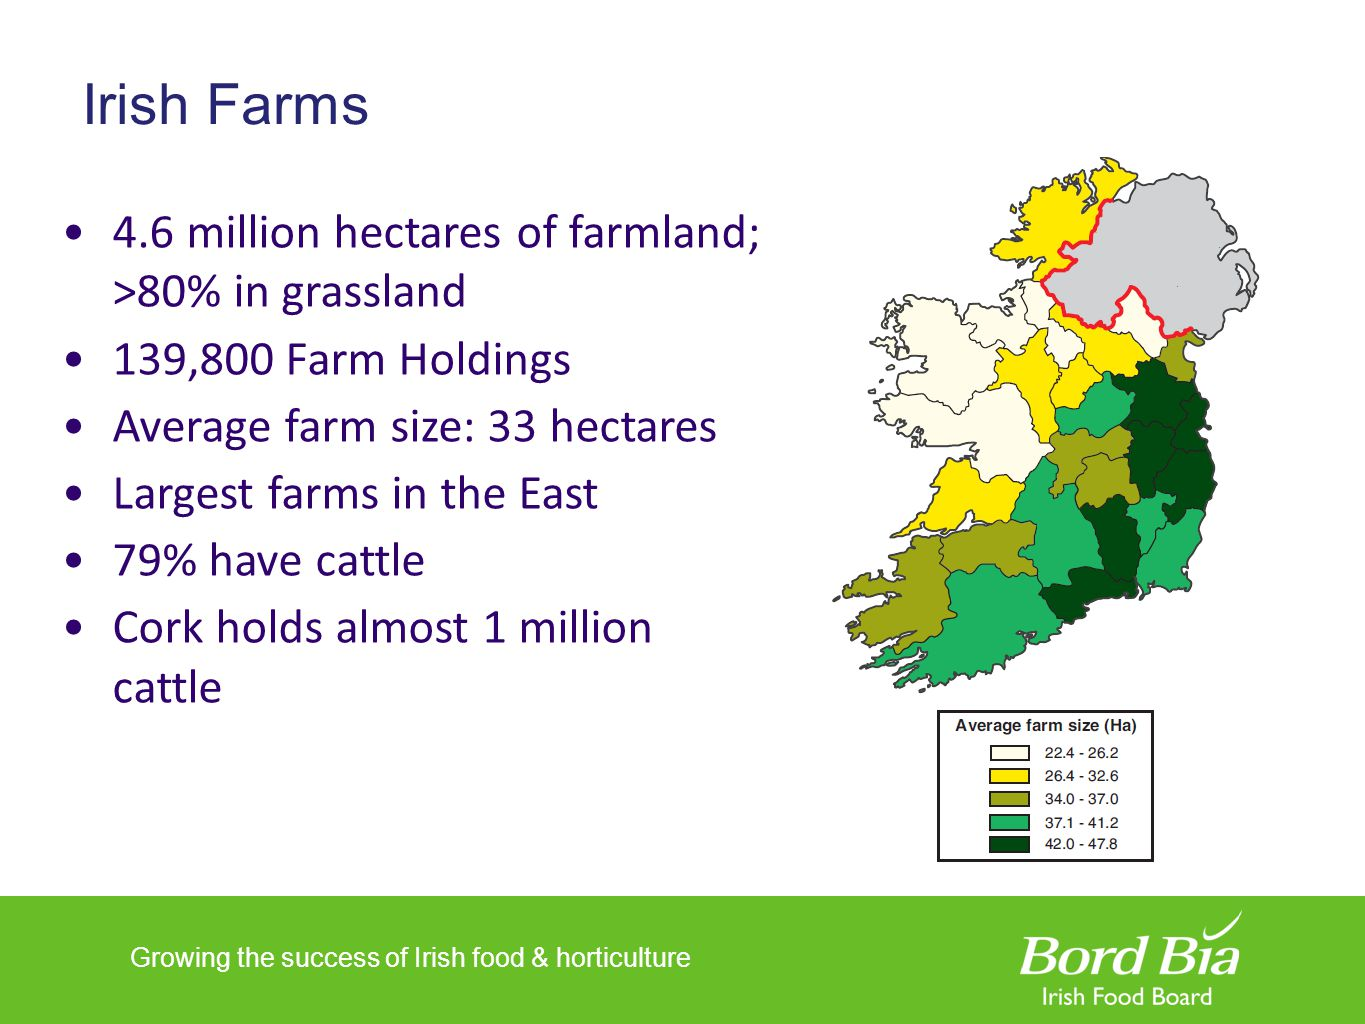 Growing the success of Irish food & horticulture Irish Farms 4.6 million hectares of farmland; >80% in grassland 139,800 Farm Holdings Average farm size: 33 hectares Largest farms in the East 79% have cattle Cork holds almost 1 million cattle